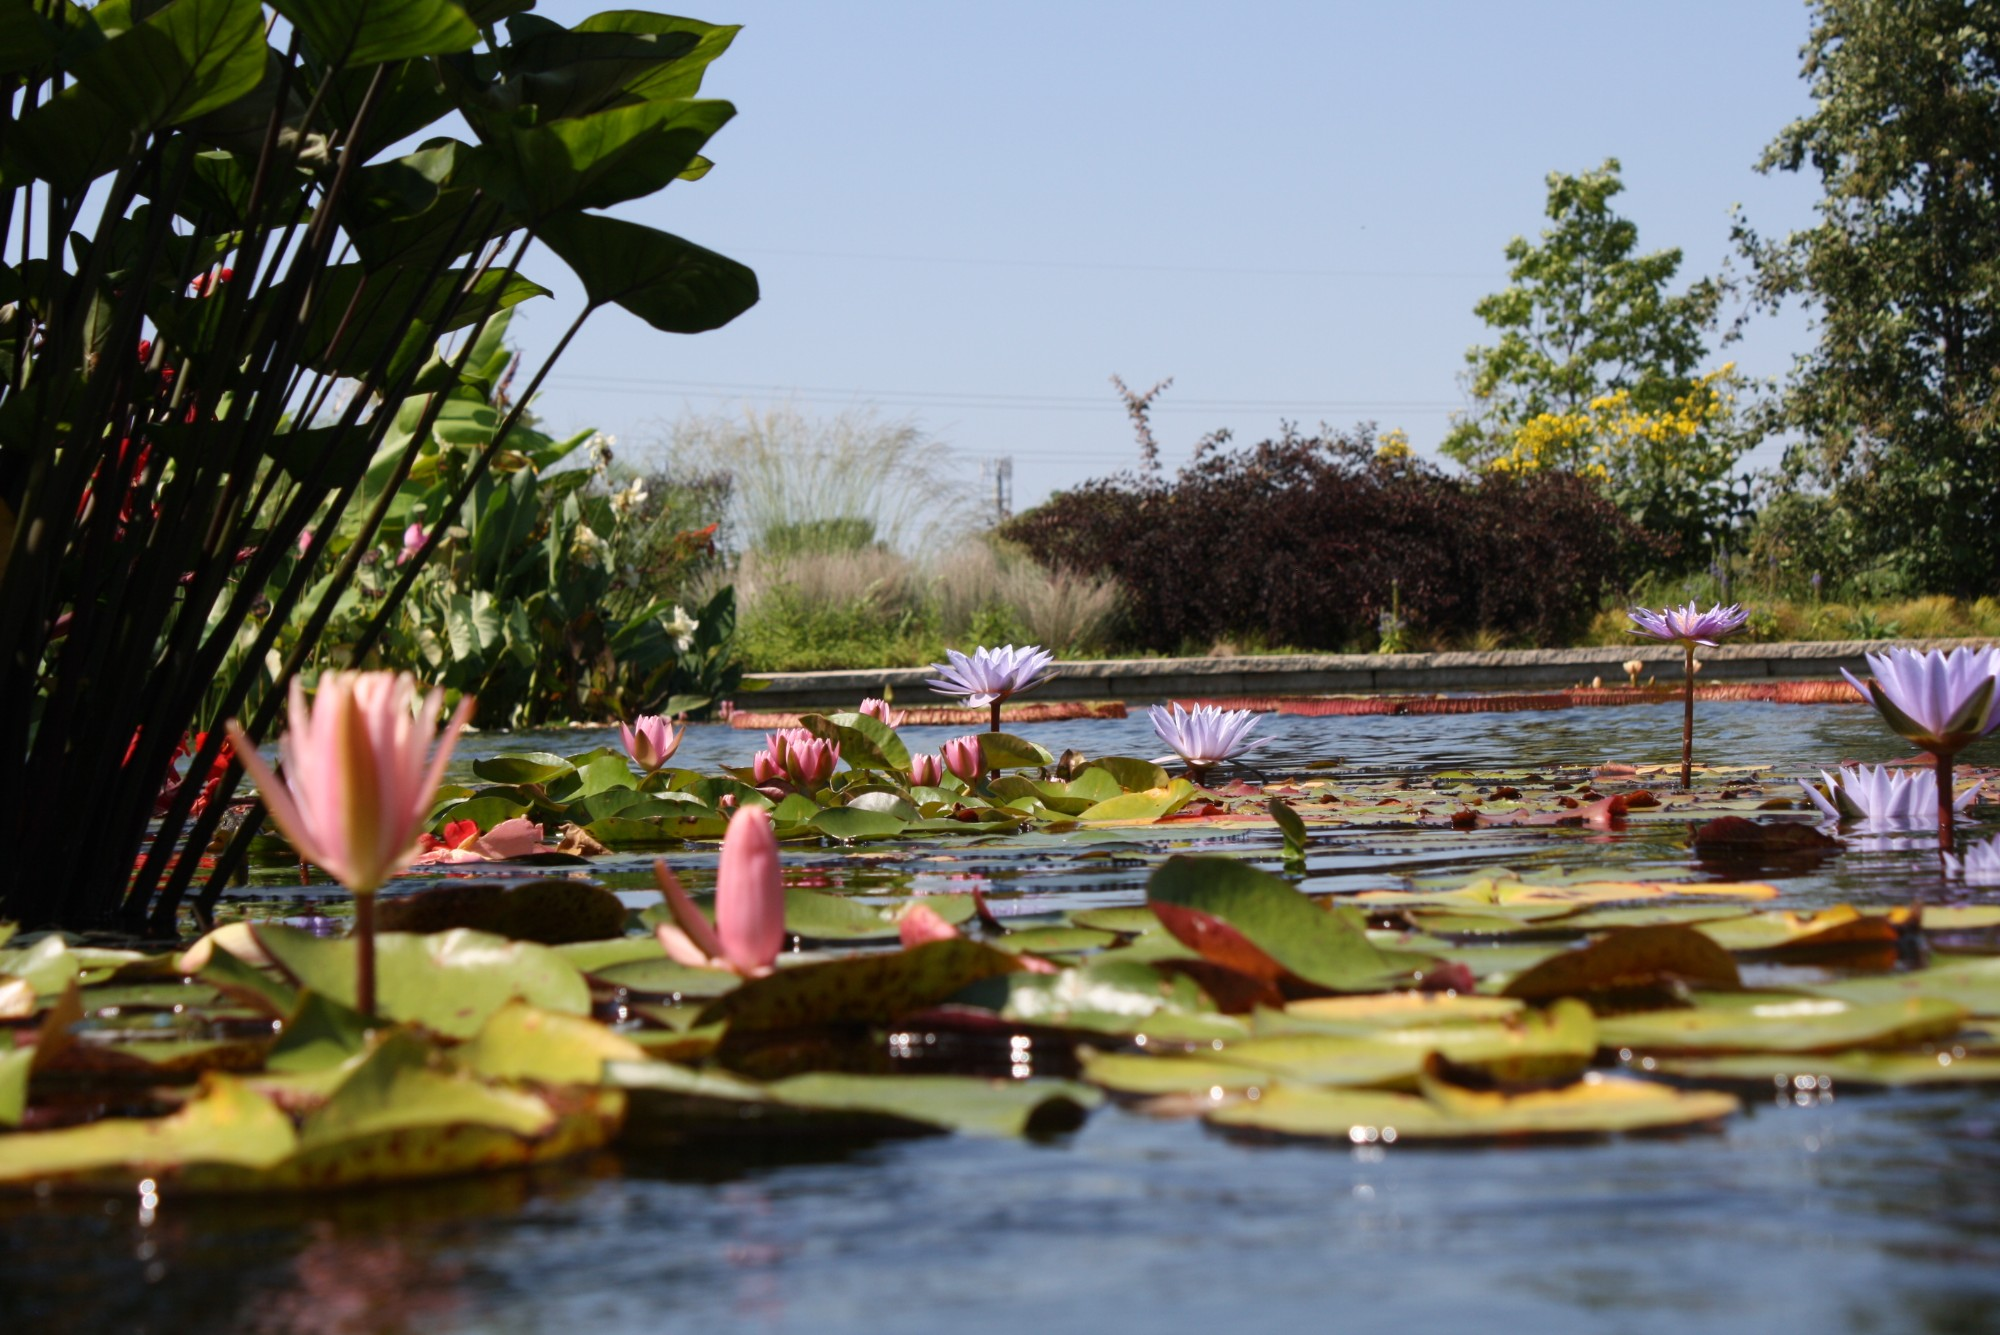 Nymphaea (water lily) flowering in the water garden, August 2016. Photo by Josh Schultes.